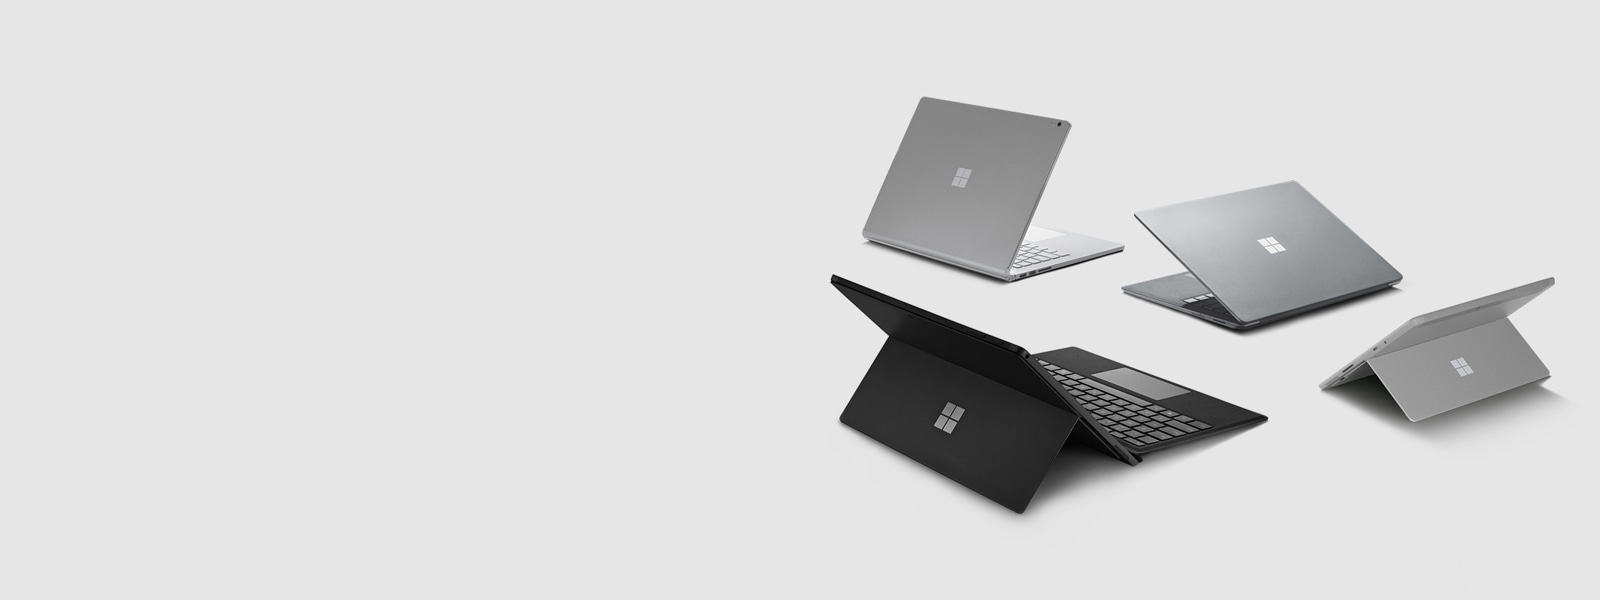 Surface Book 2, Surface Pro 6, Surface Go, Surface Laptop 2, Surface Pen, Surface Dial